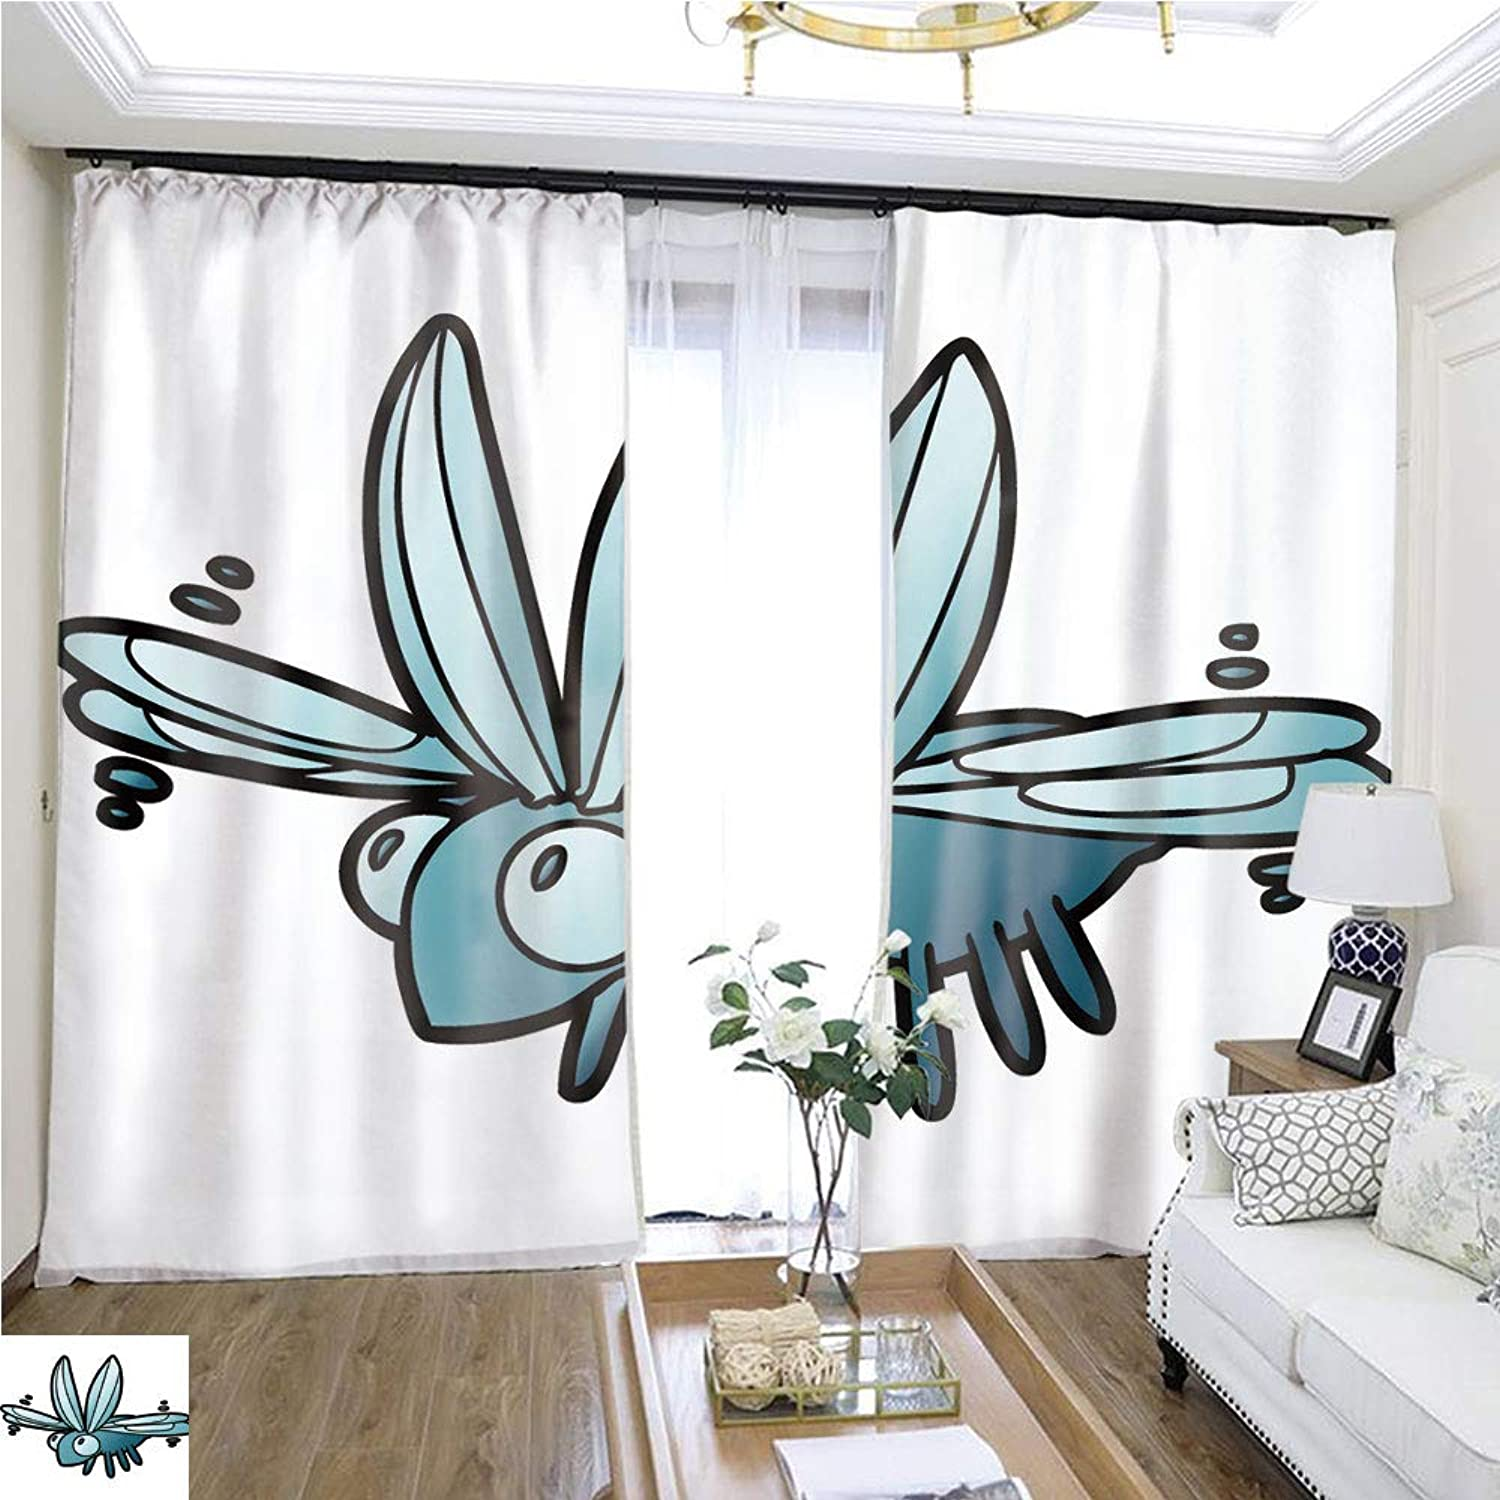 Air Port Screen Cute Cartoon Bug flying1 W96 x L84 Reduce Noise Highprecision Curtains for bedrooms Living Rooms Kitchens etc.